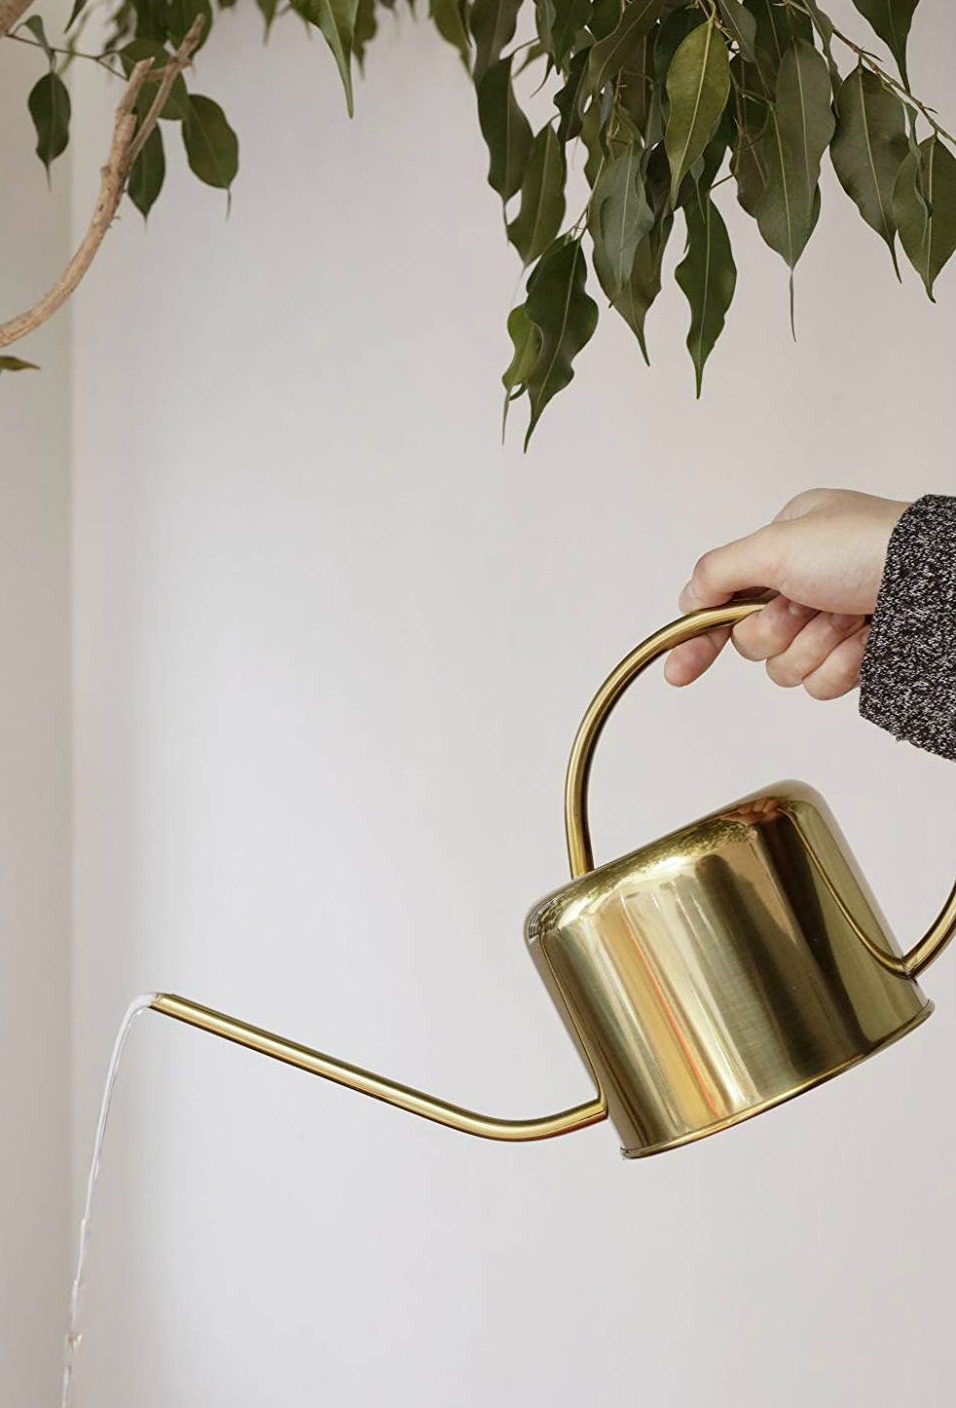 Holiday Gift Guide: 25 Gift Ideas for Homebodies 2018 #giftguide #holidayshopping #gifts #homebodies